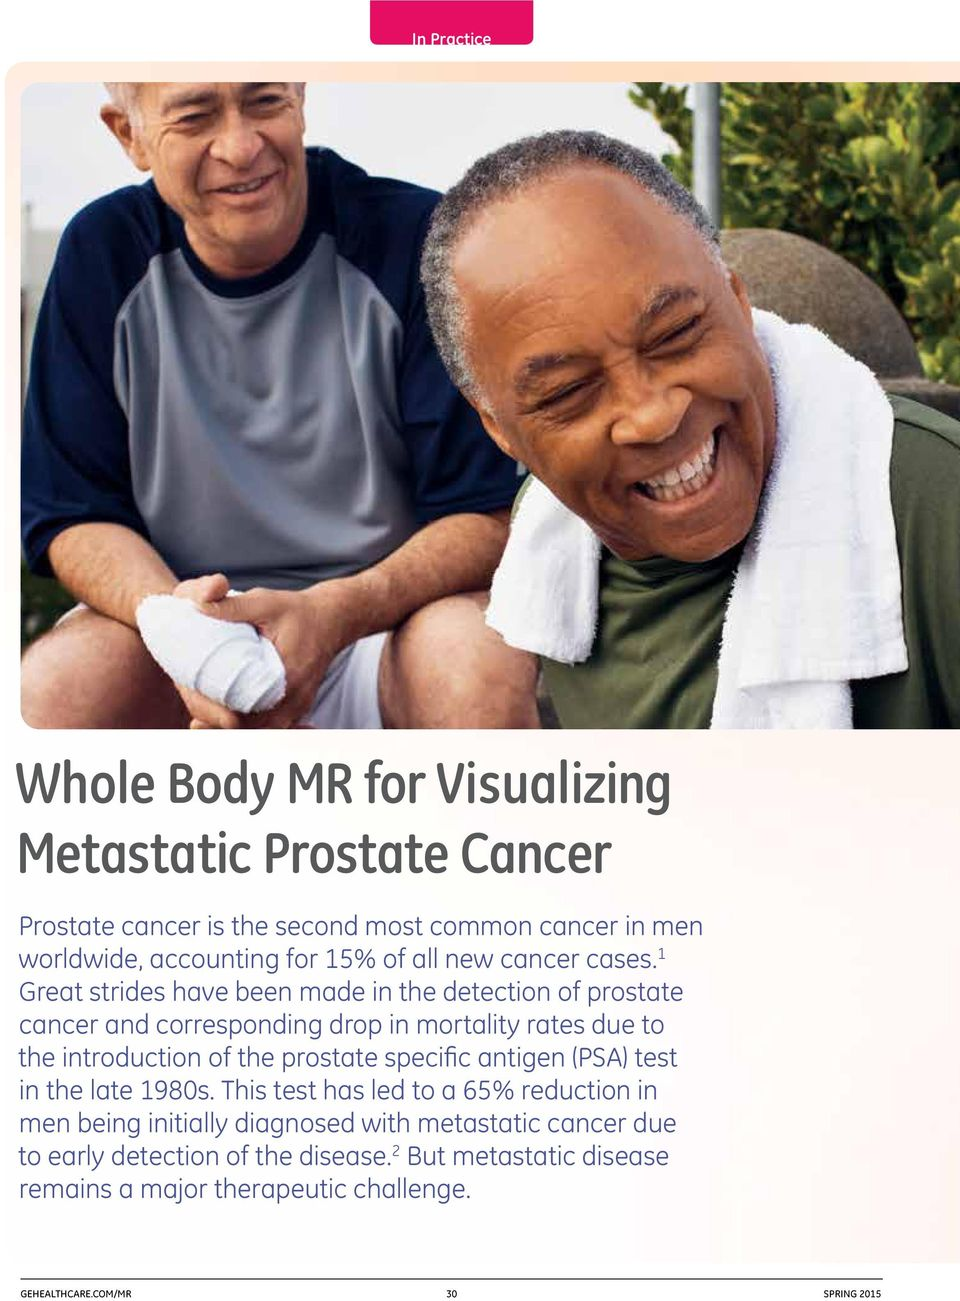 1 Great strides have been made in the detection of prostate cancer and corresponding drop in mortality rates due to the introduction of the prostate